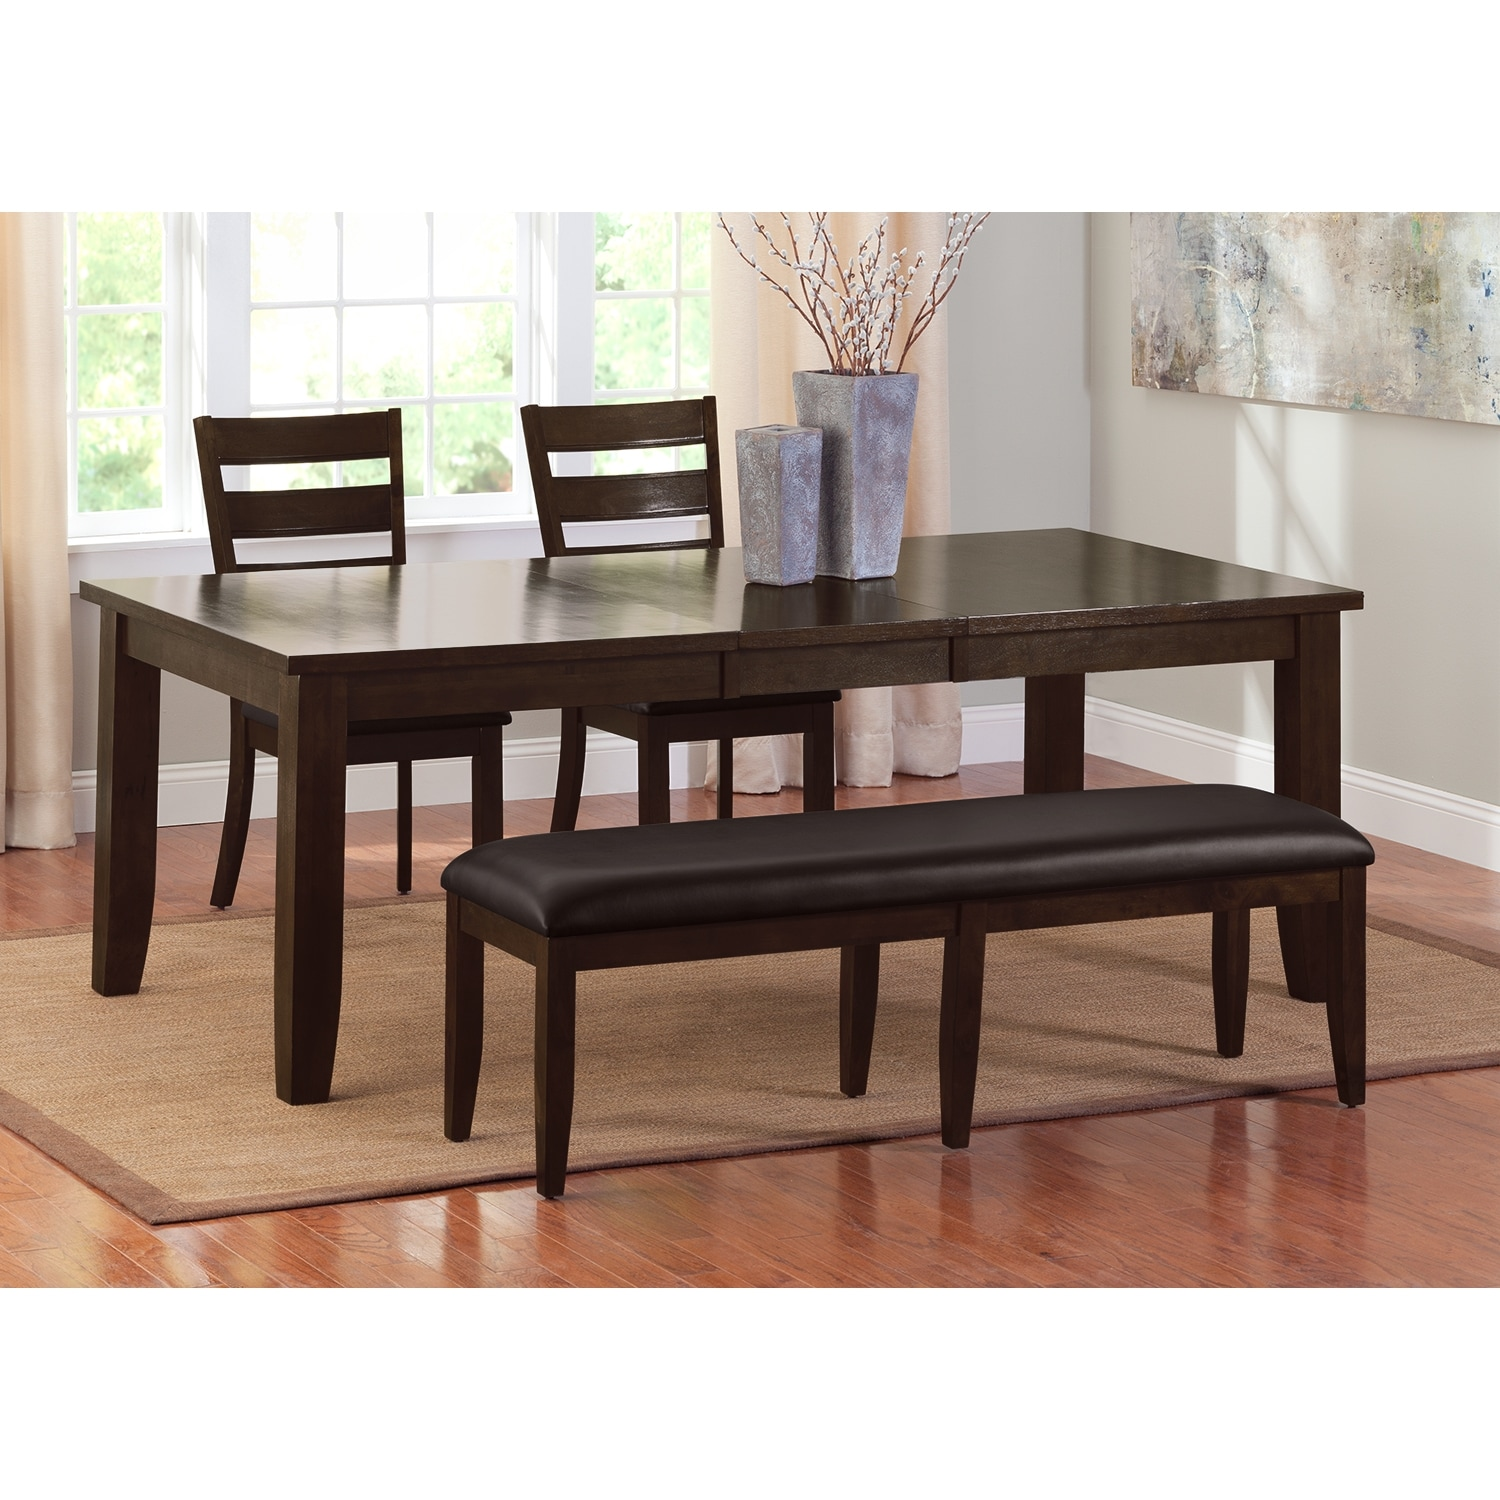 Abaco Table 2 Chairs and Bench Brown